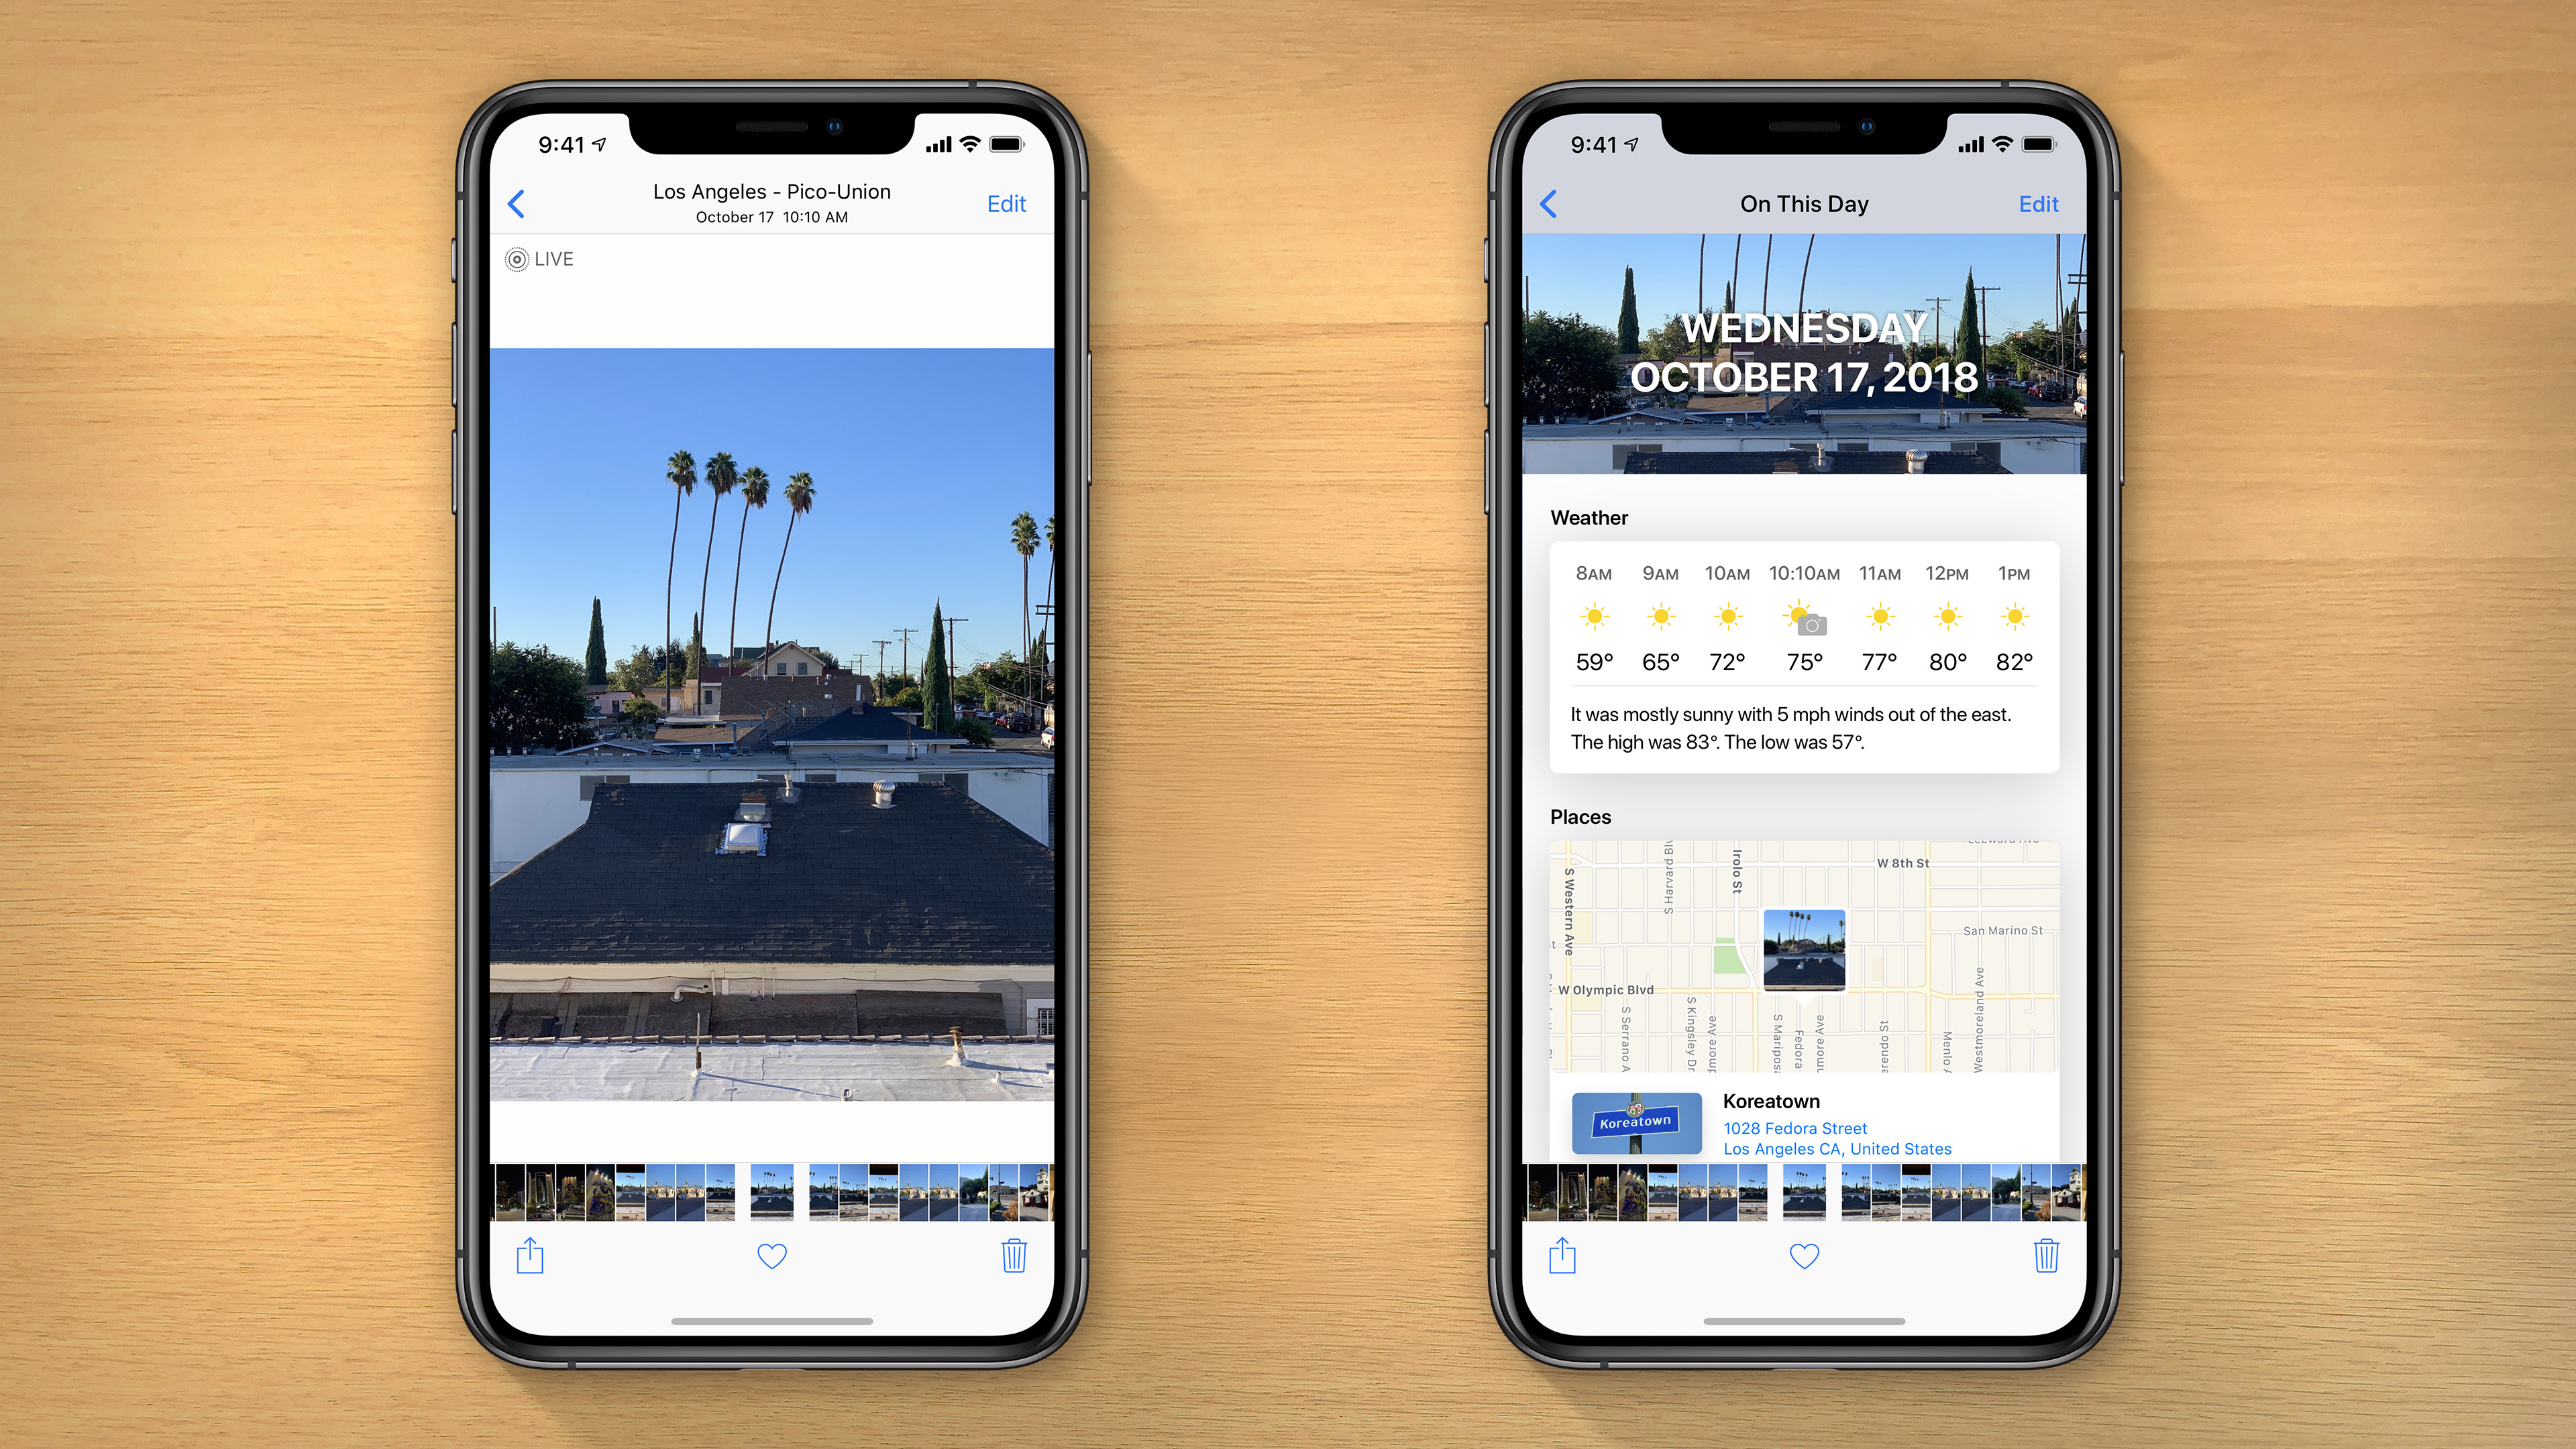 Reimagining the Photos app